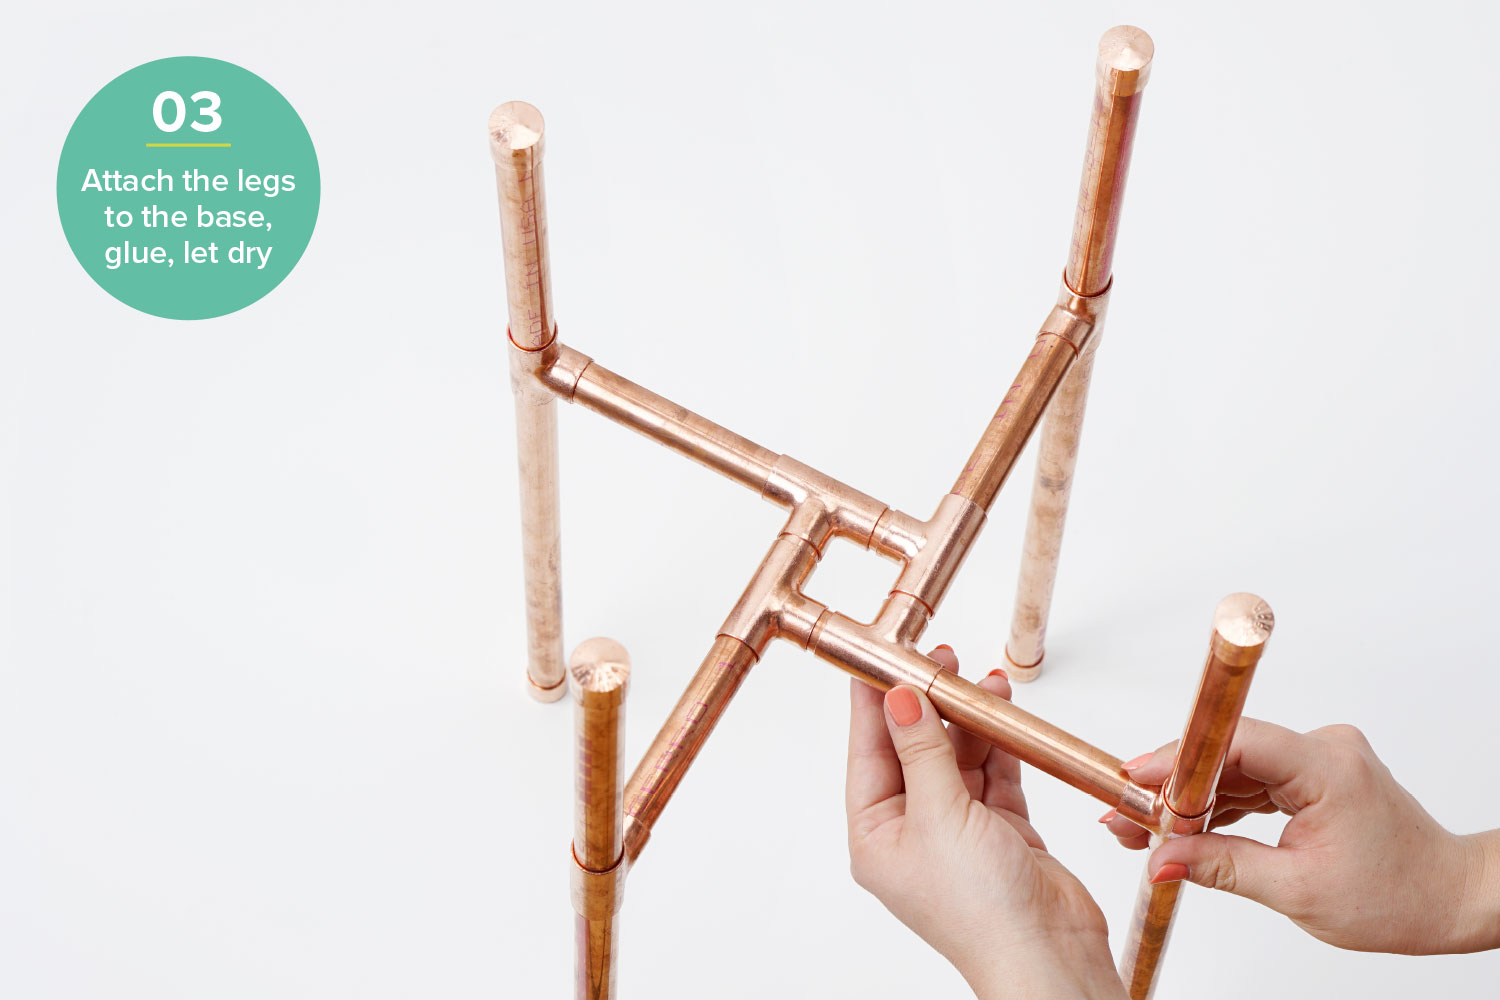 diy plant stand hardware hacks step 3 copper pipe